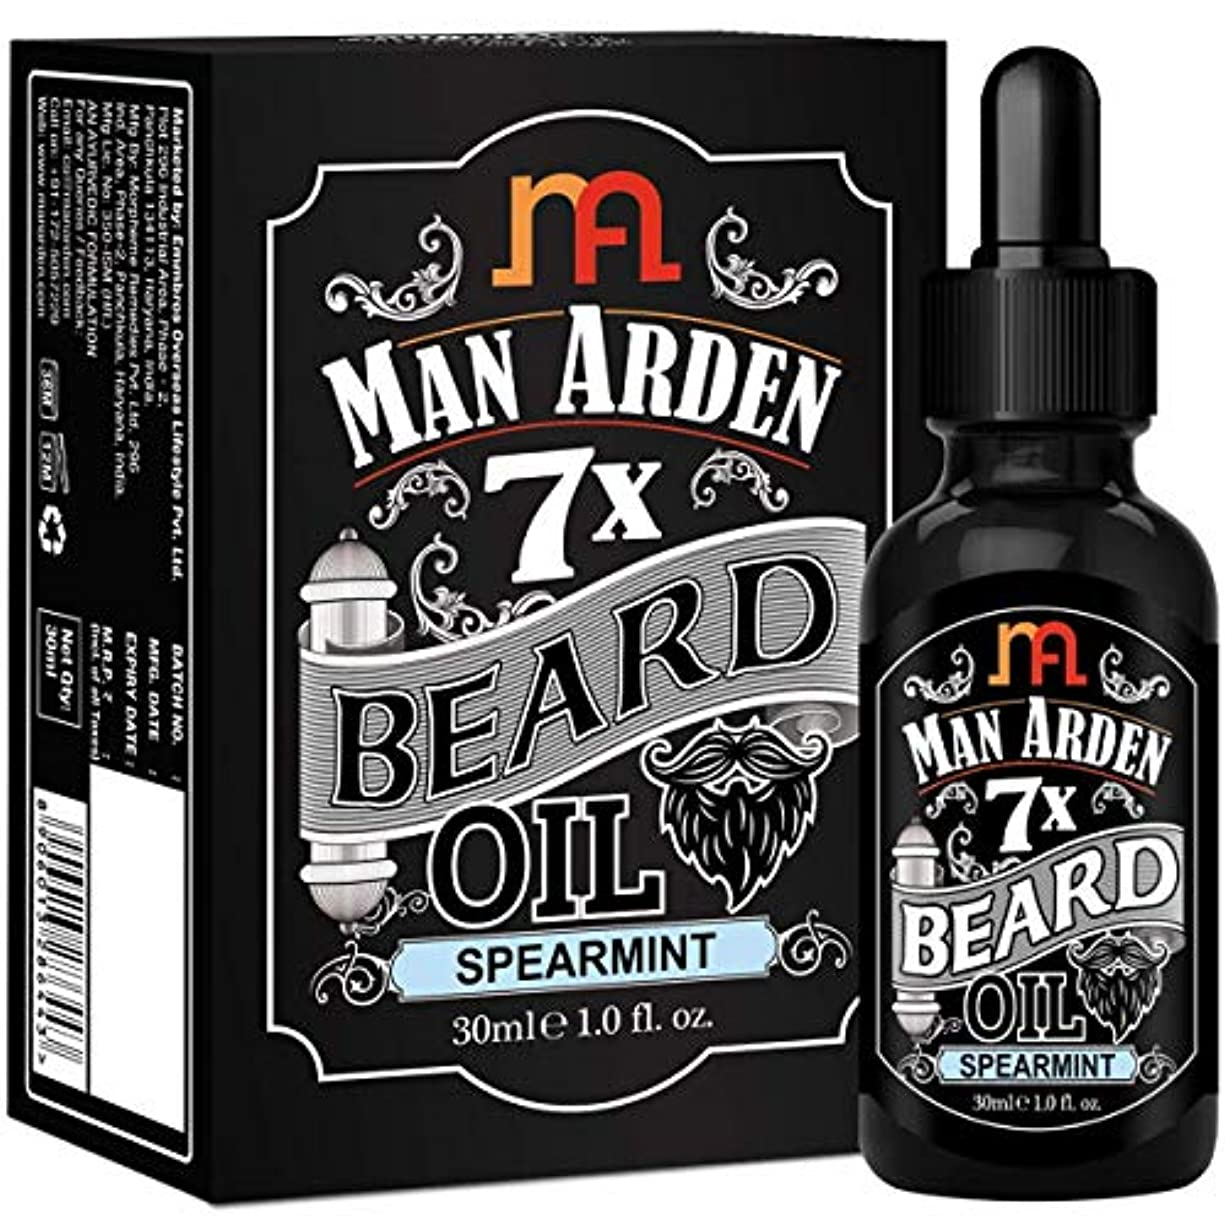 染料育成守るMan Arden 7X Beard Oil 30ml (Spearmint) - 7 Premium Oils For Beard Growth & Nourishment